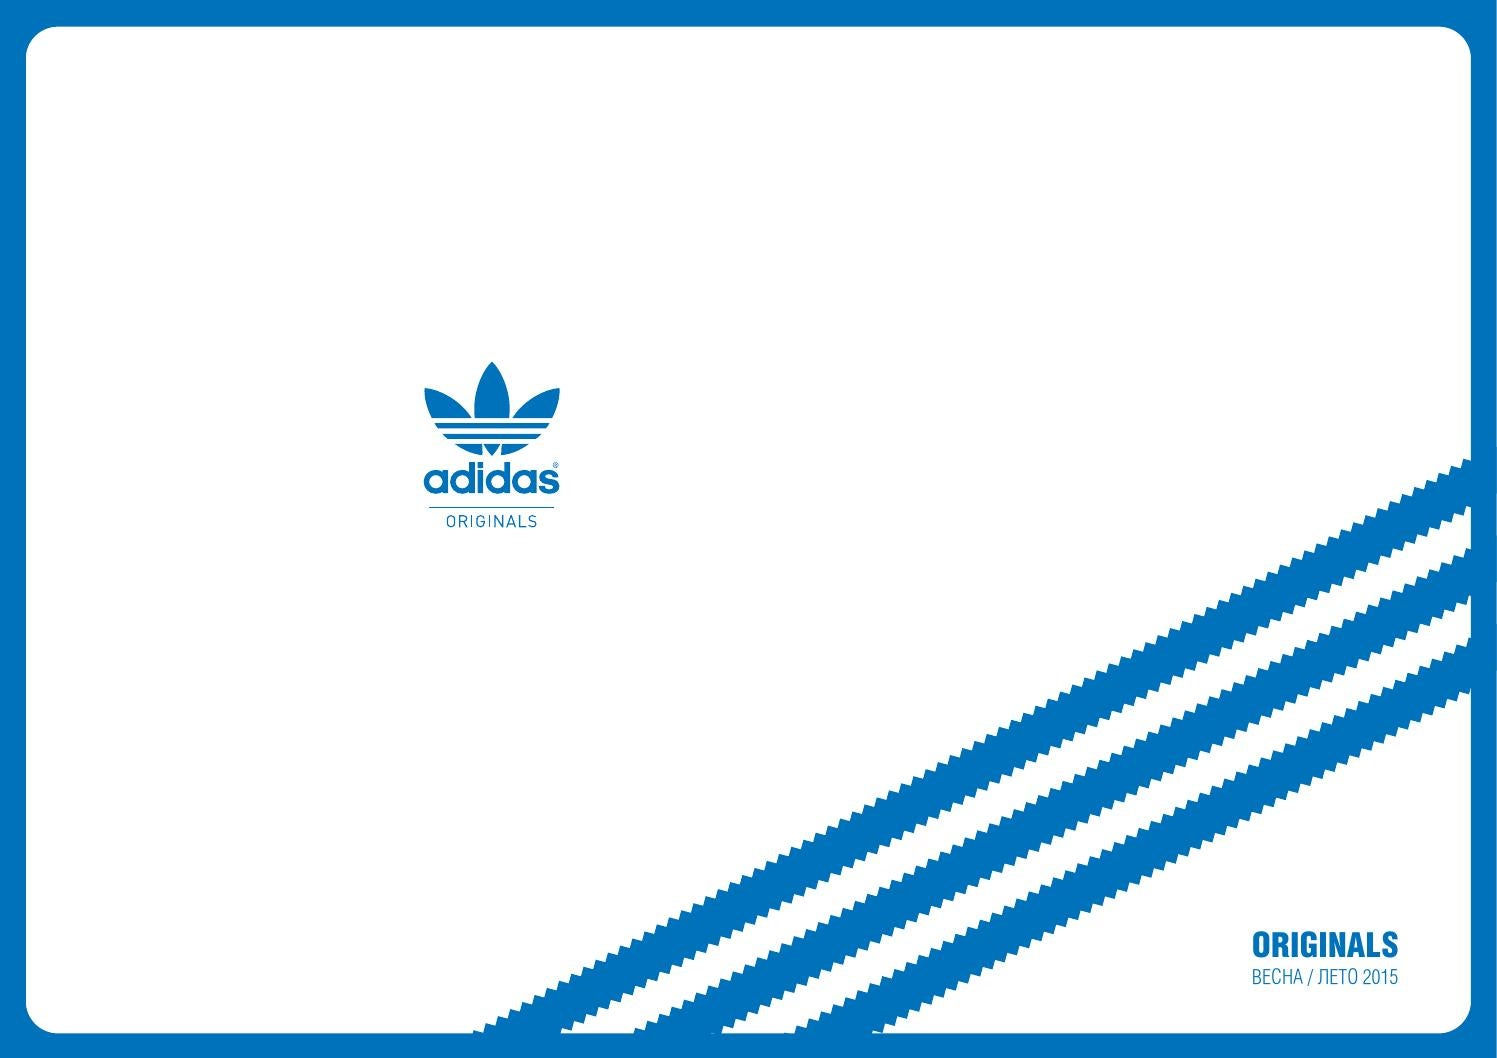 Adidas ss15 originals final by Maverick Zen issuu